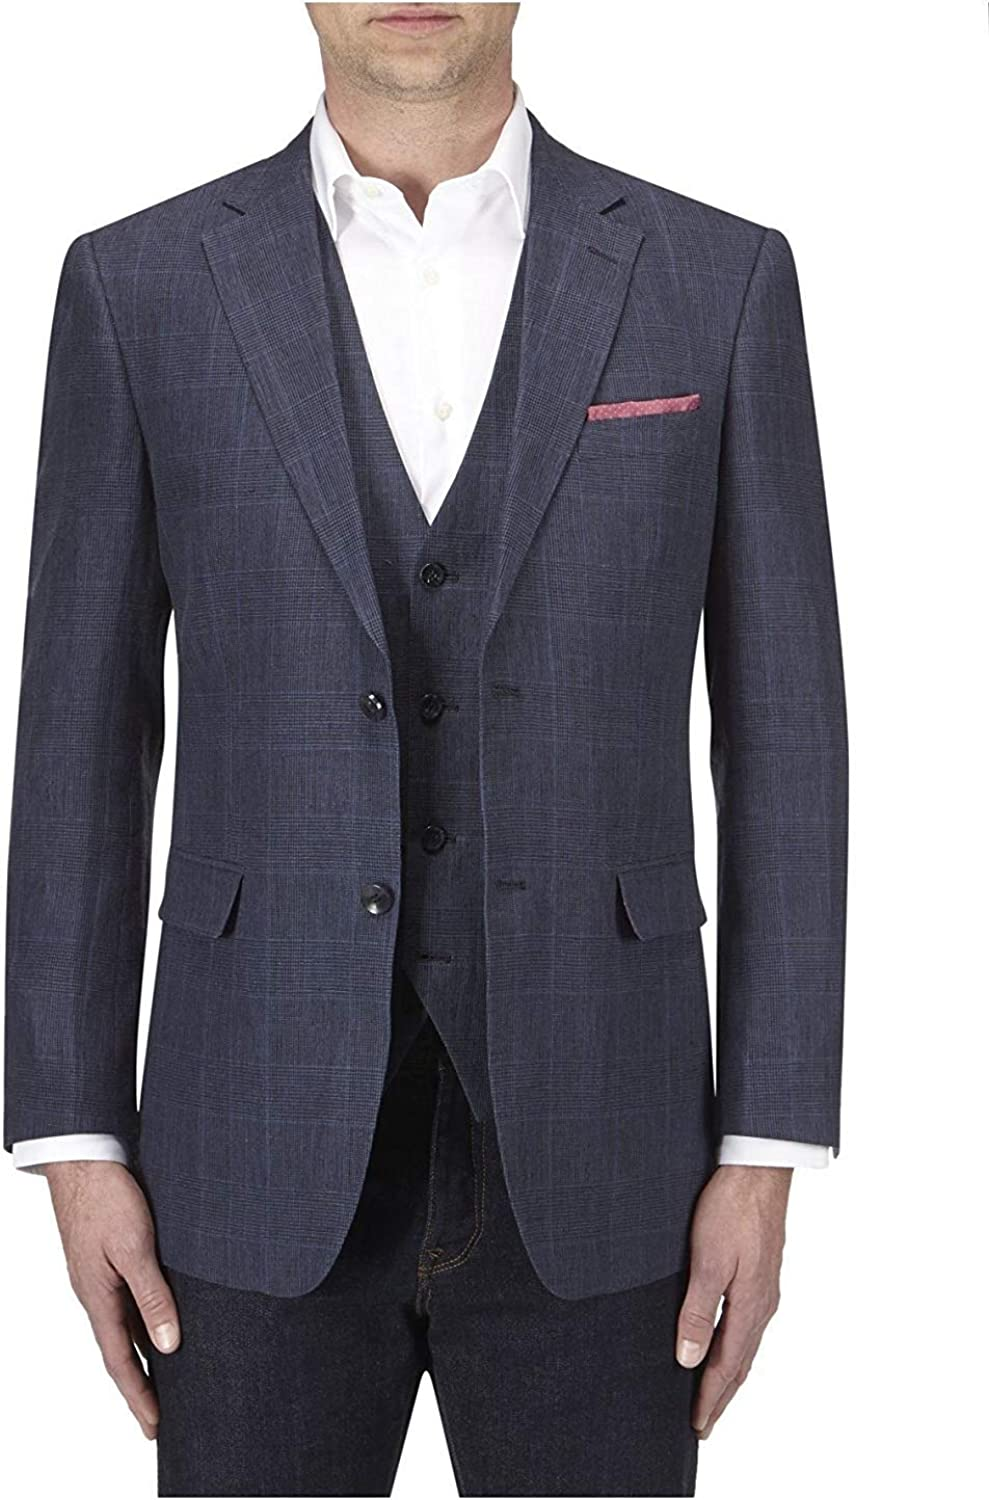 SKOPES Vigo Linen Jacket in Blue Check in Chest 44 to 62 Inches S//R//L